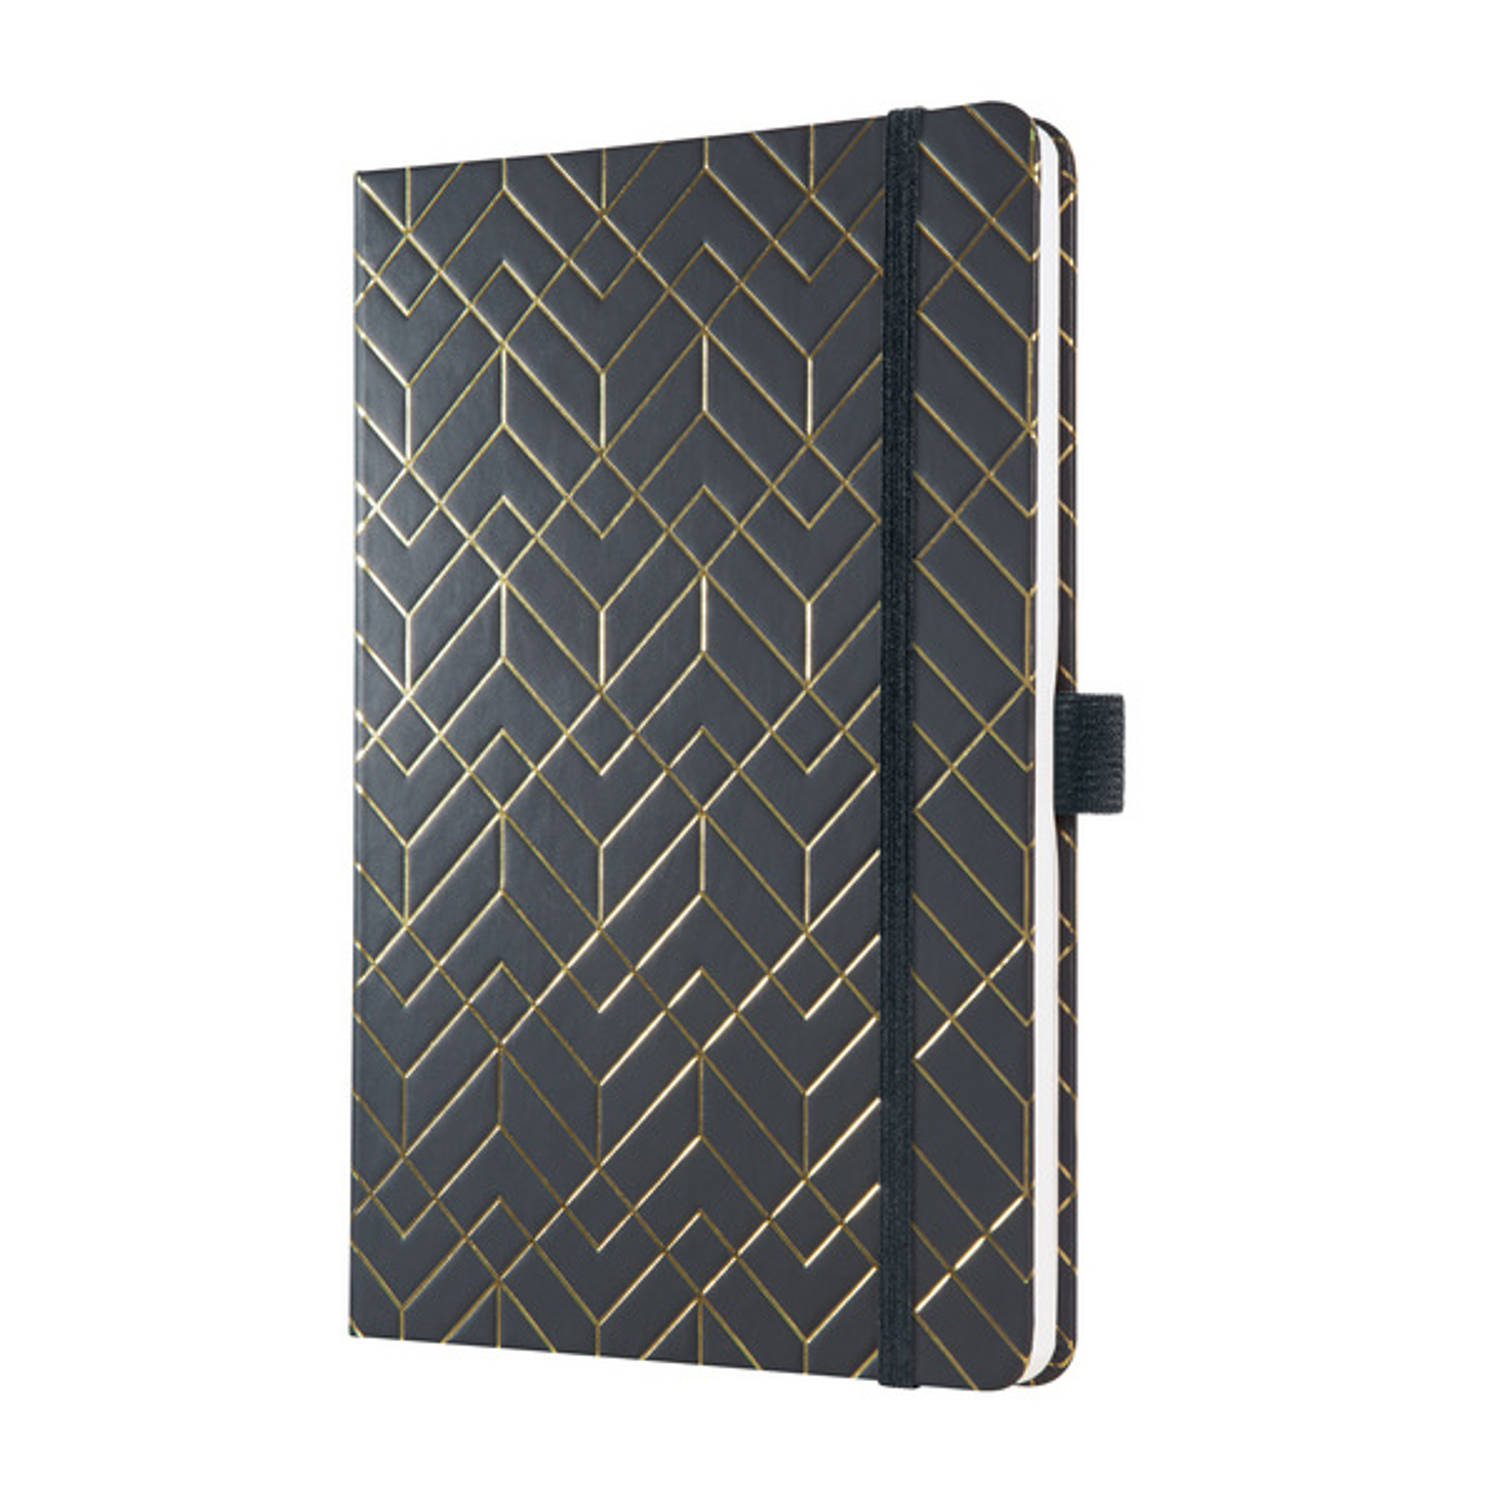 Korting Weekagenda Jolie Beauty A5 2021 Hardcover 'Metallic Black'